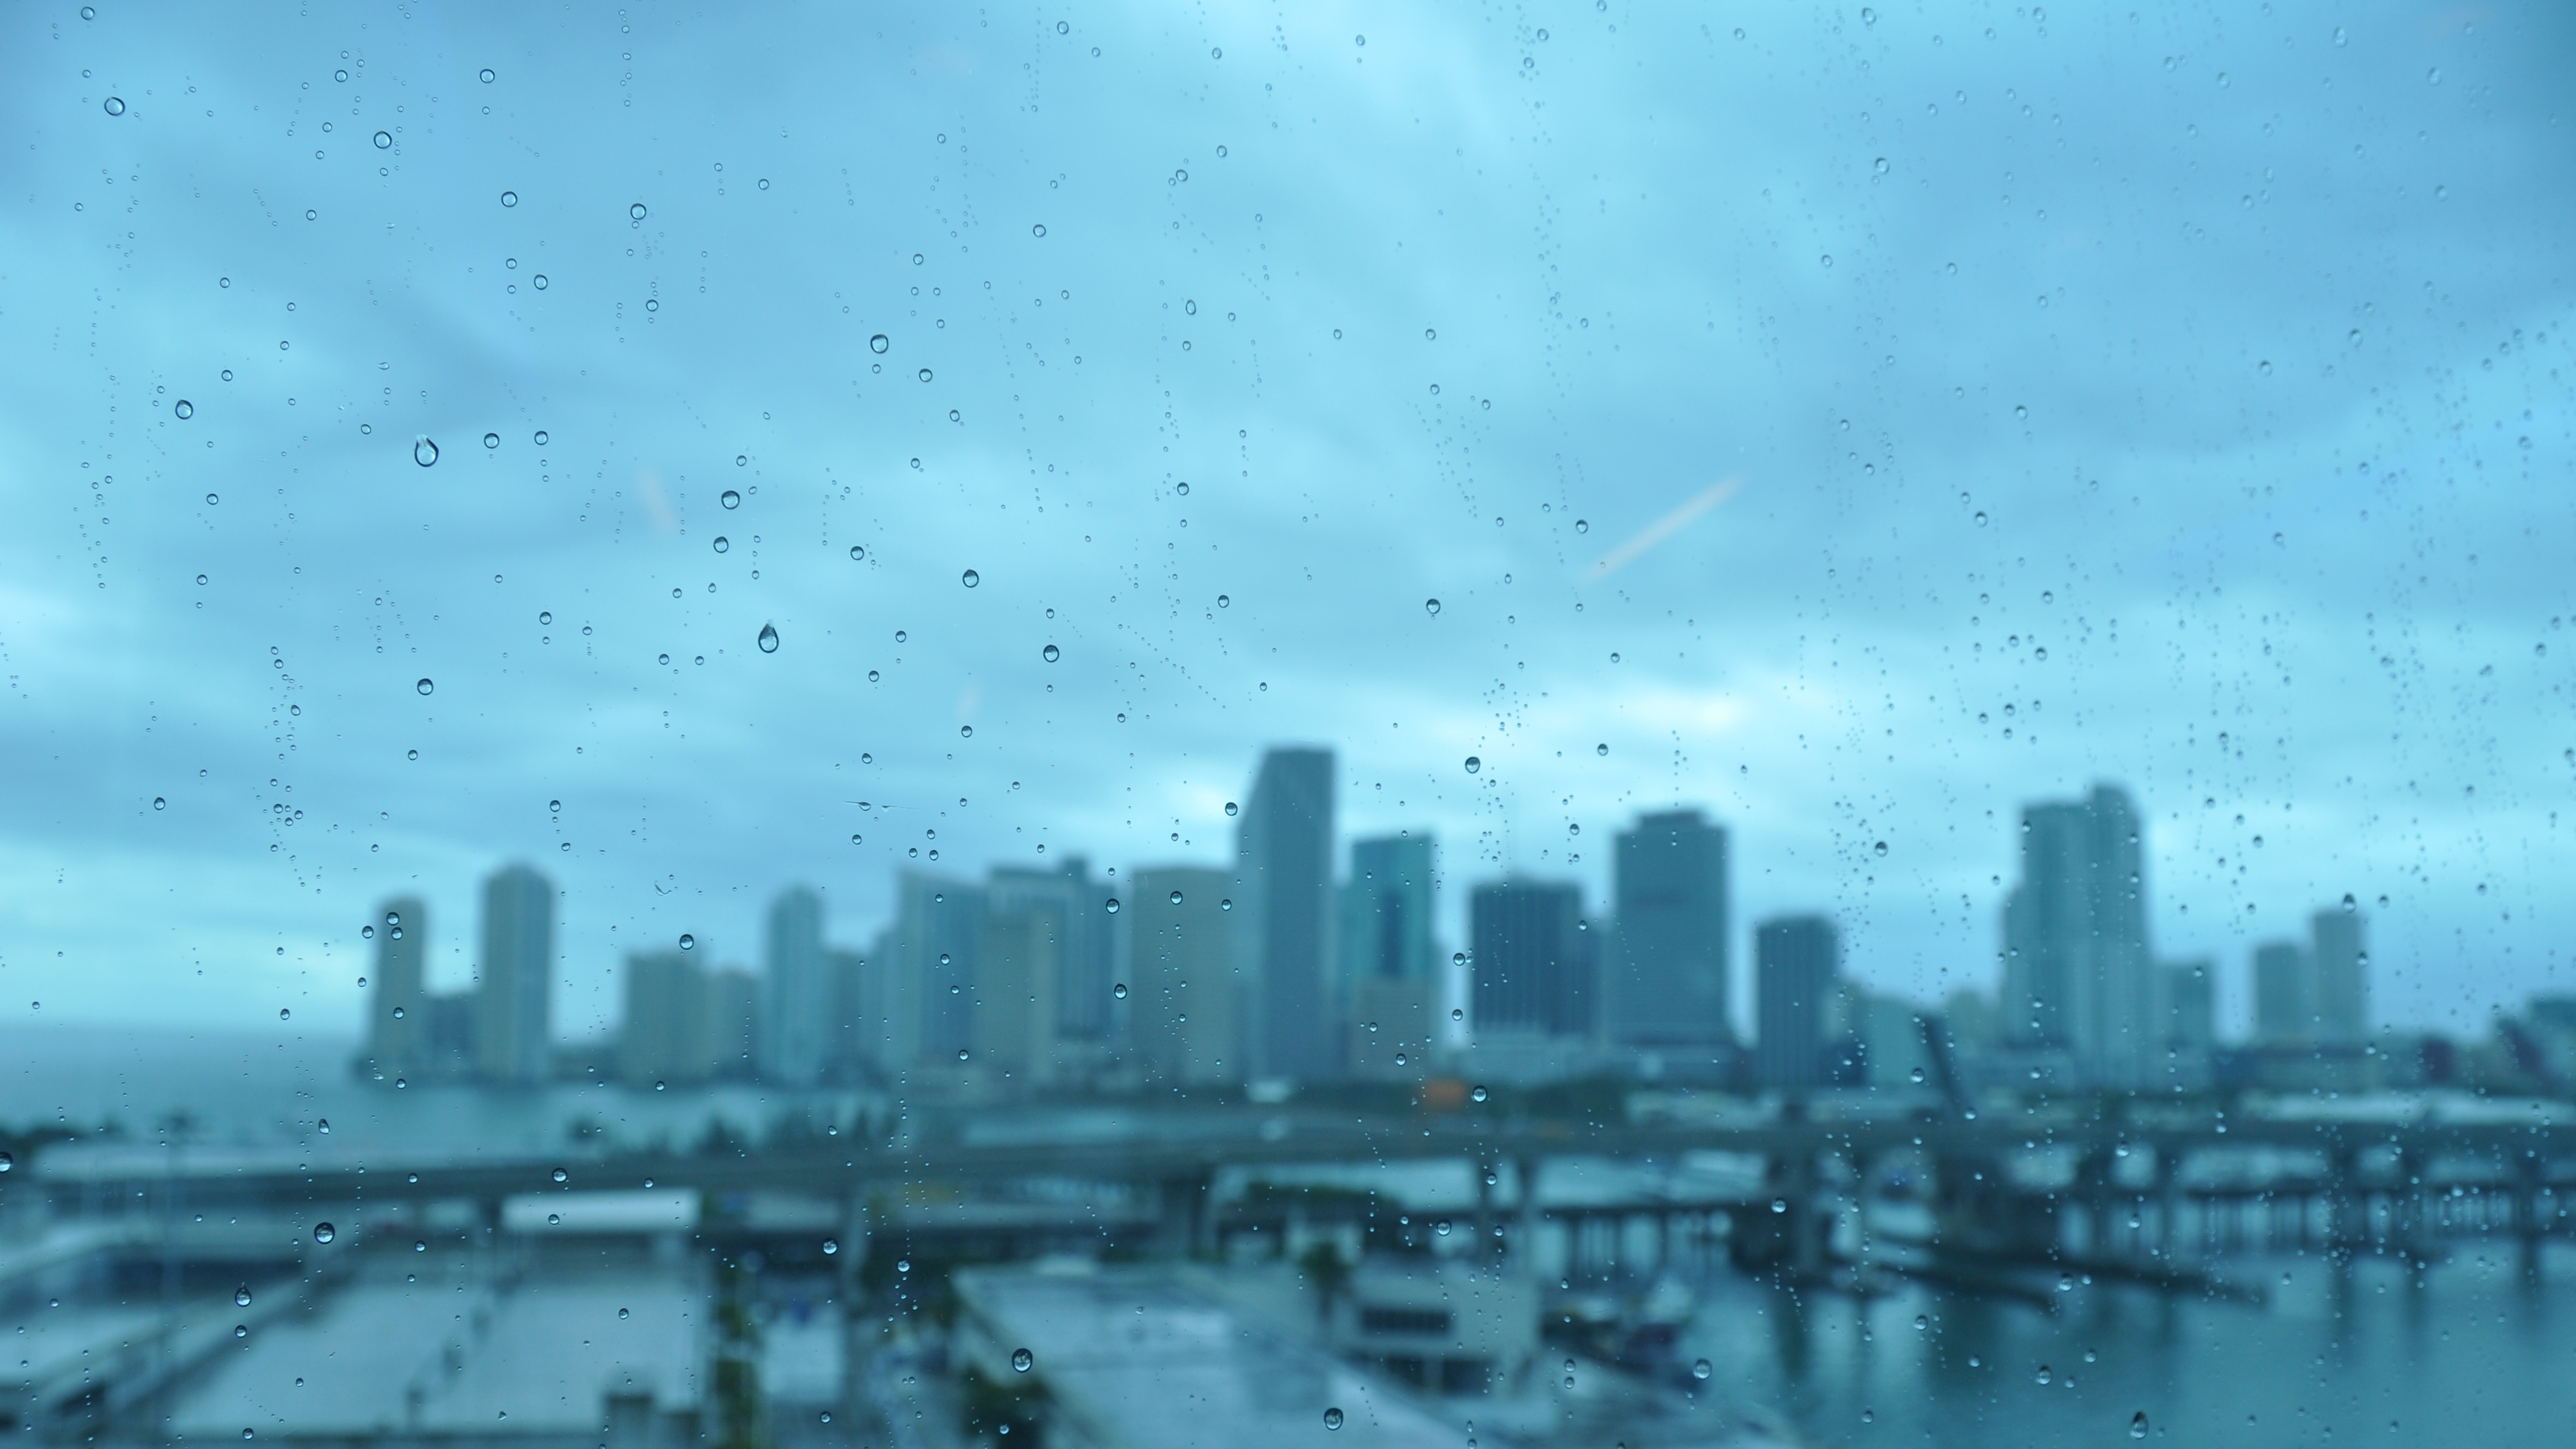 cityscapes rain on glass HD Wallpaper